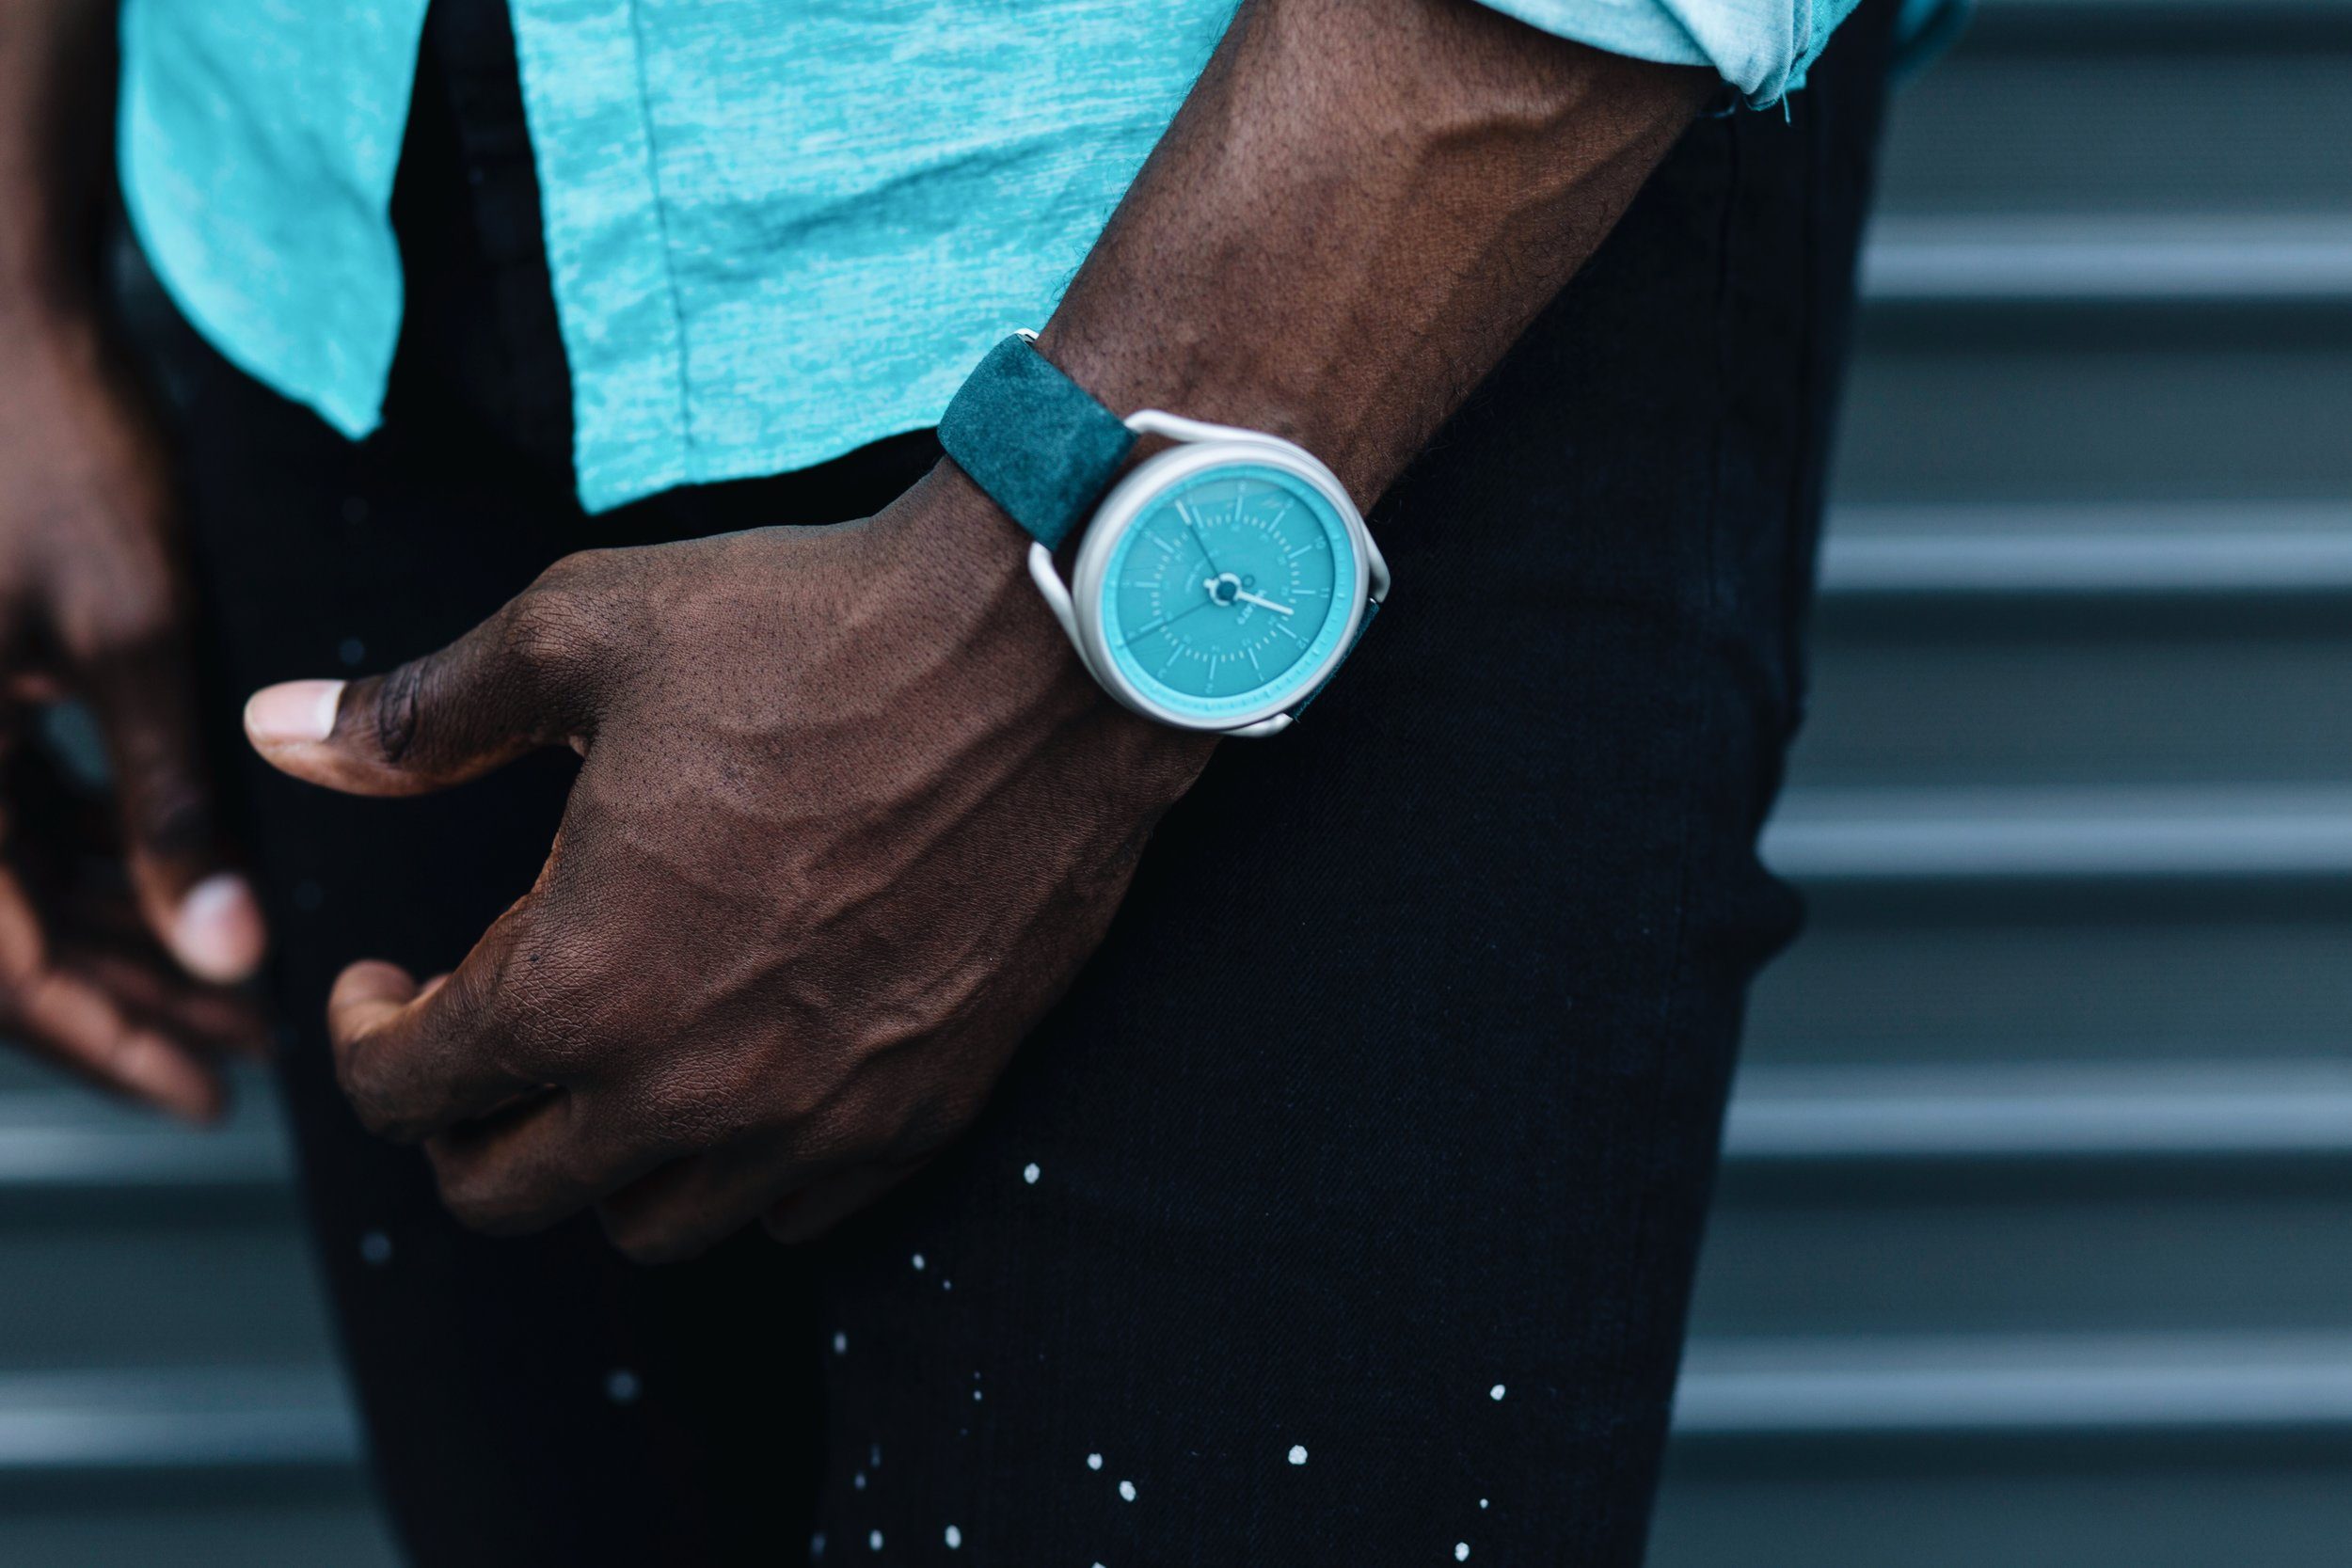 """The Creative Gentleman wearing teal watch by WHAT? Watches, black jeans with white paint spatter, and teal shirt. The image was created as part of The Creative Gentleman and What? Watches """" making time for the unusual"""" campaign."""